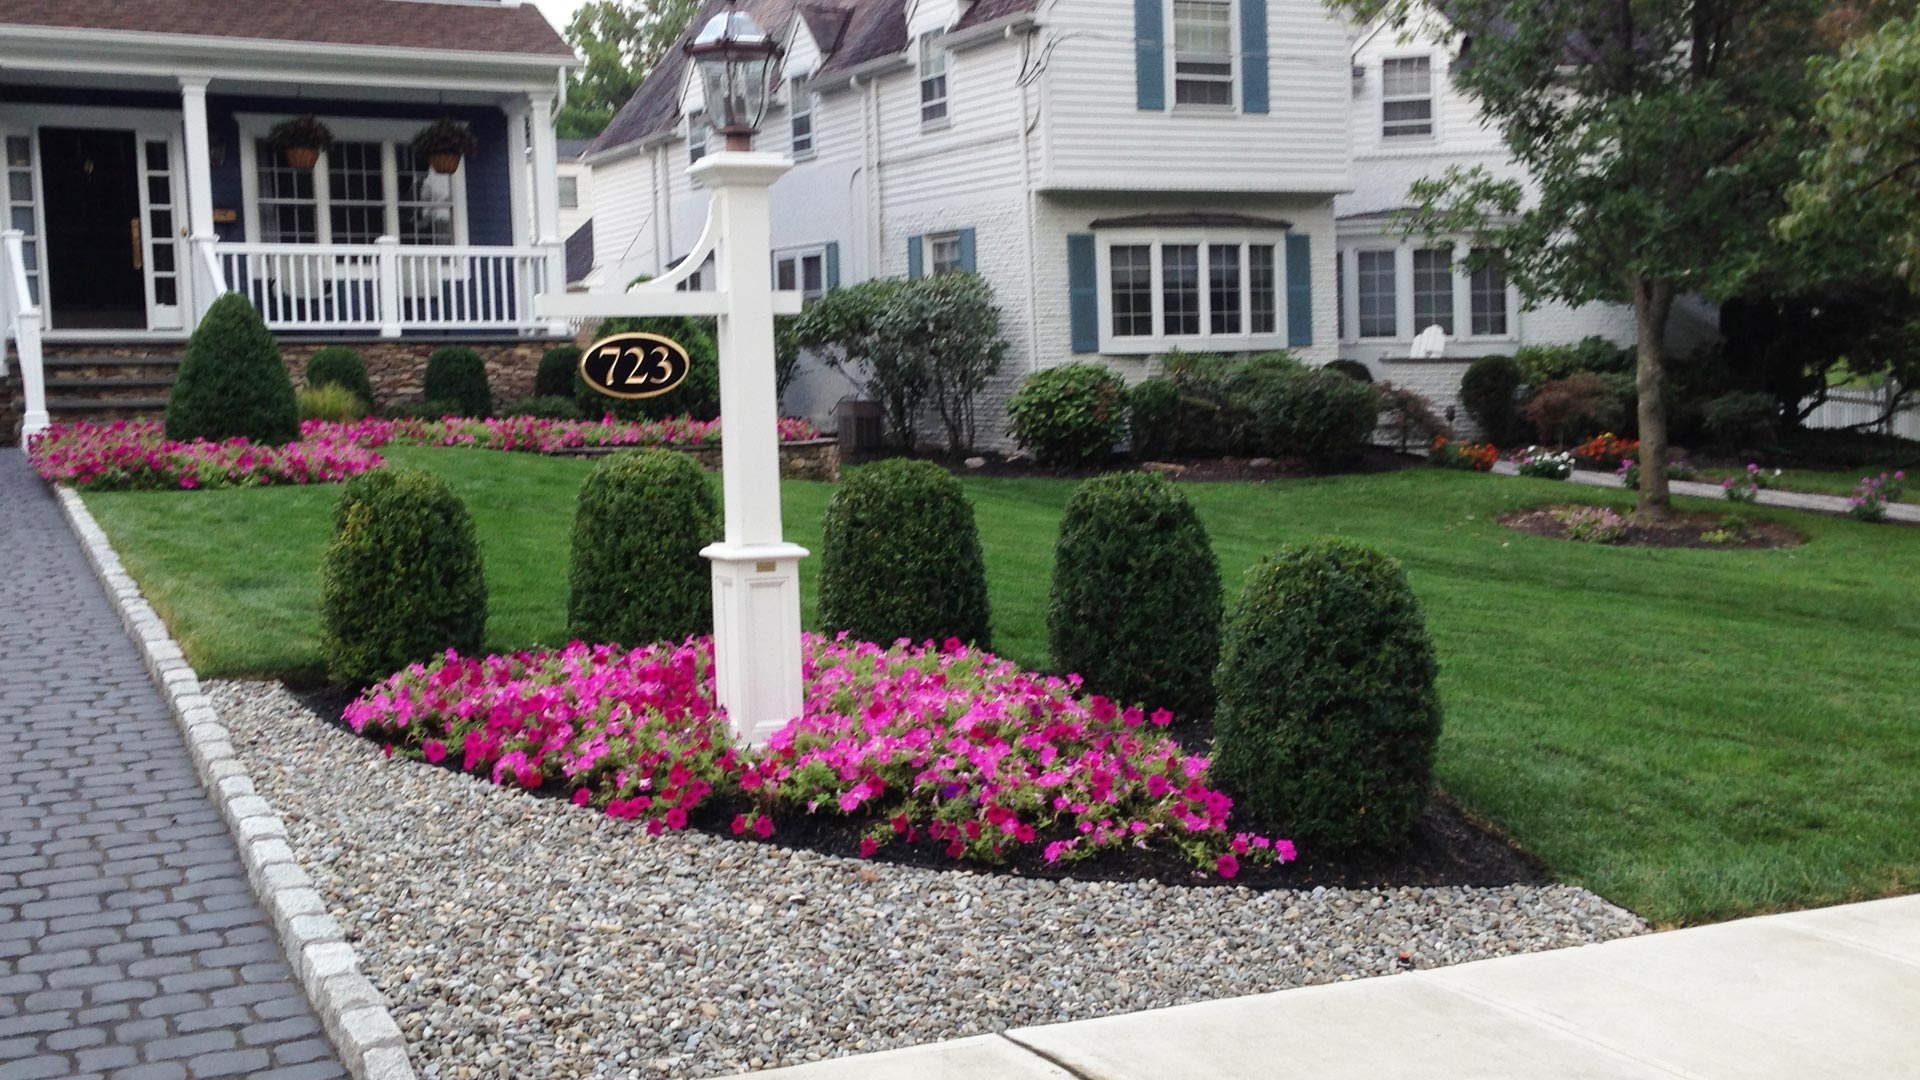 After new landscaping and lawn care at home in Warren, NJ.